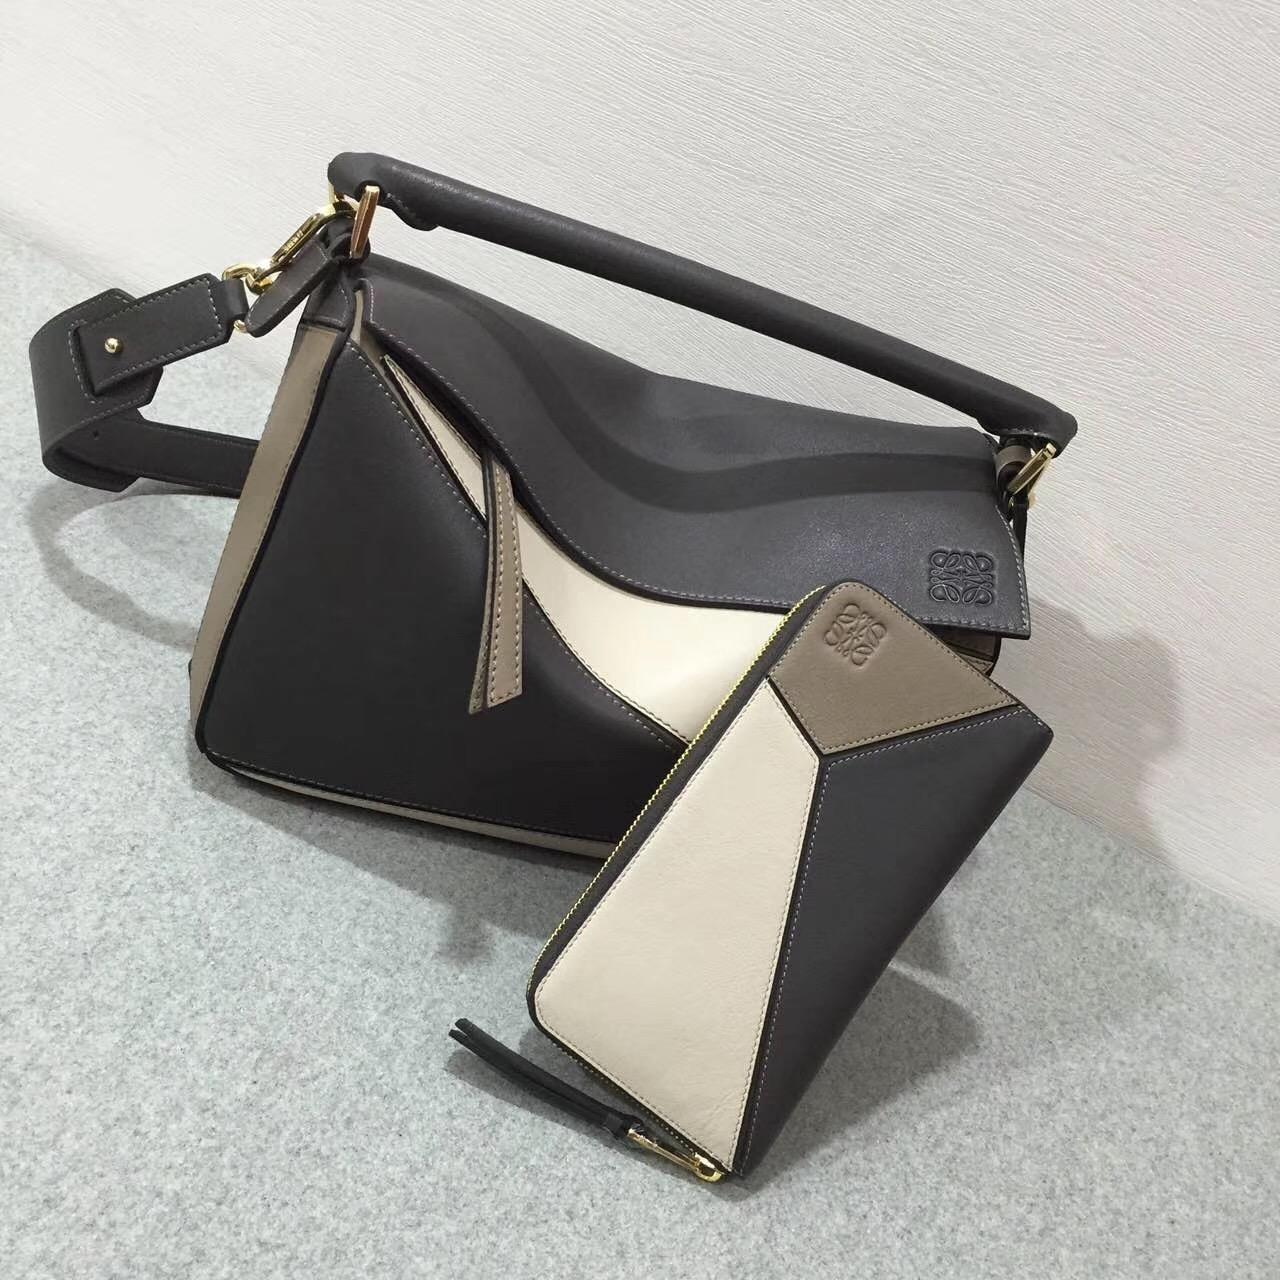 Loewe羅意威 几何包 Puzzle Bag Dark Taupe Multitone